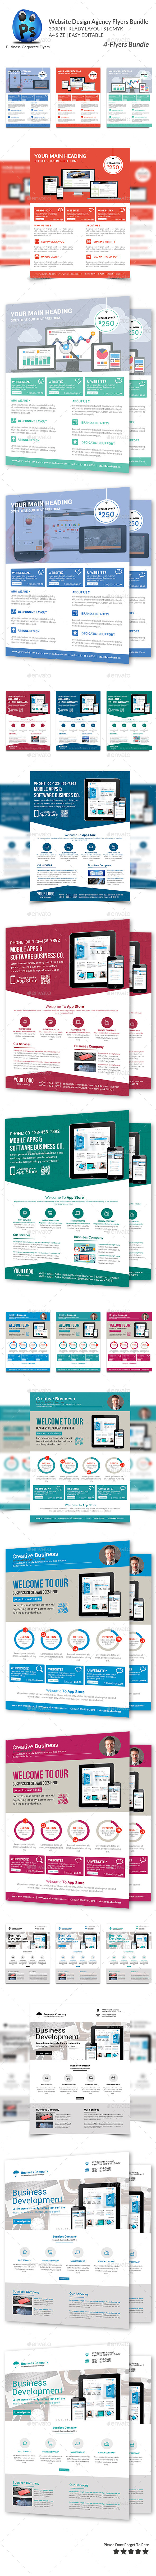 GraphicRiver Website Design Agency 4 Flyer Bundle 10068197